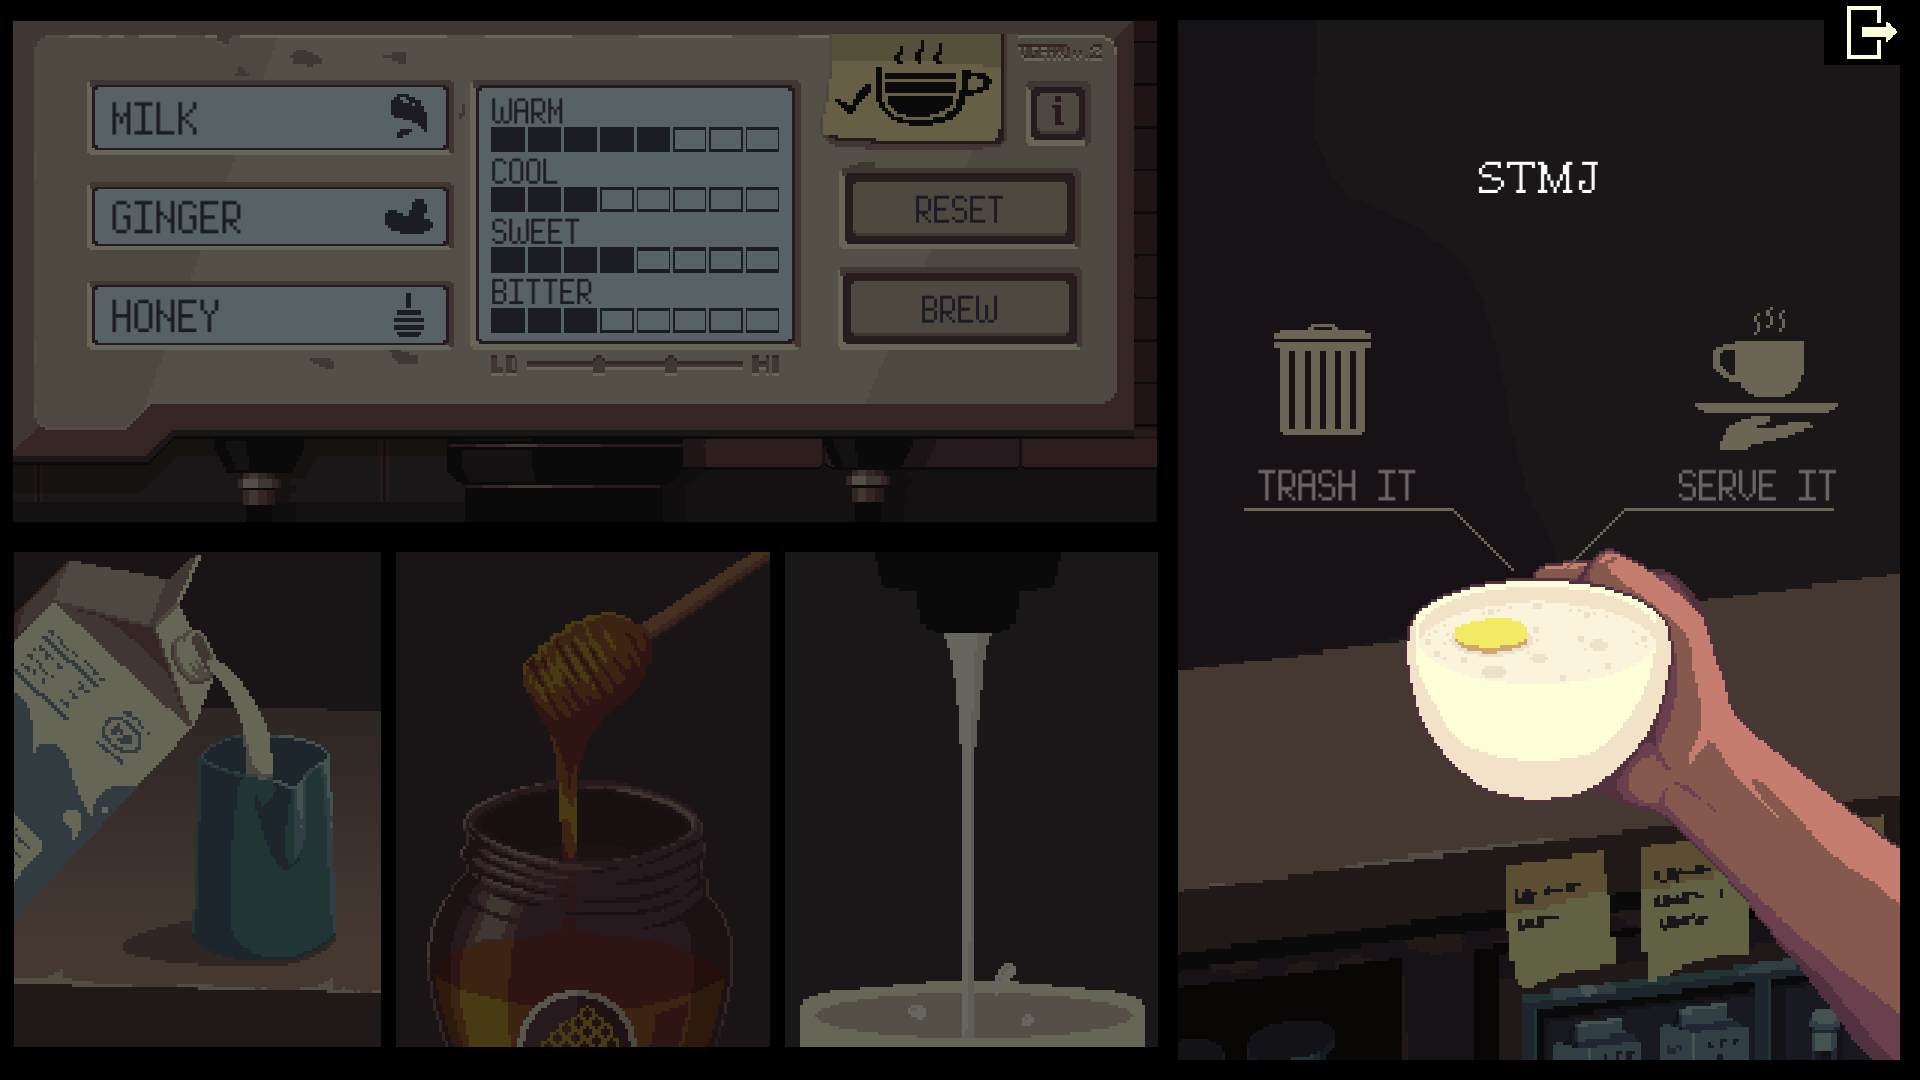 STML recipe is milk, ginger and honey on the Coffee Talk video game.